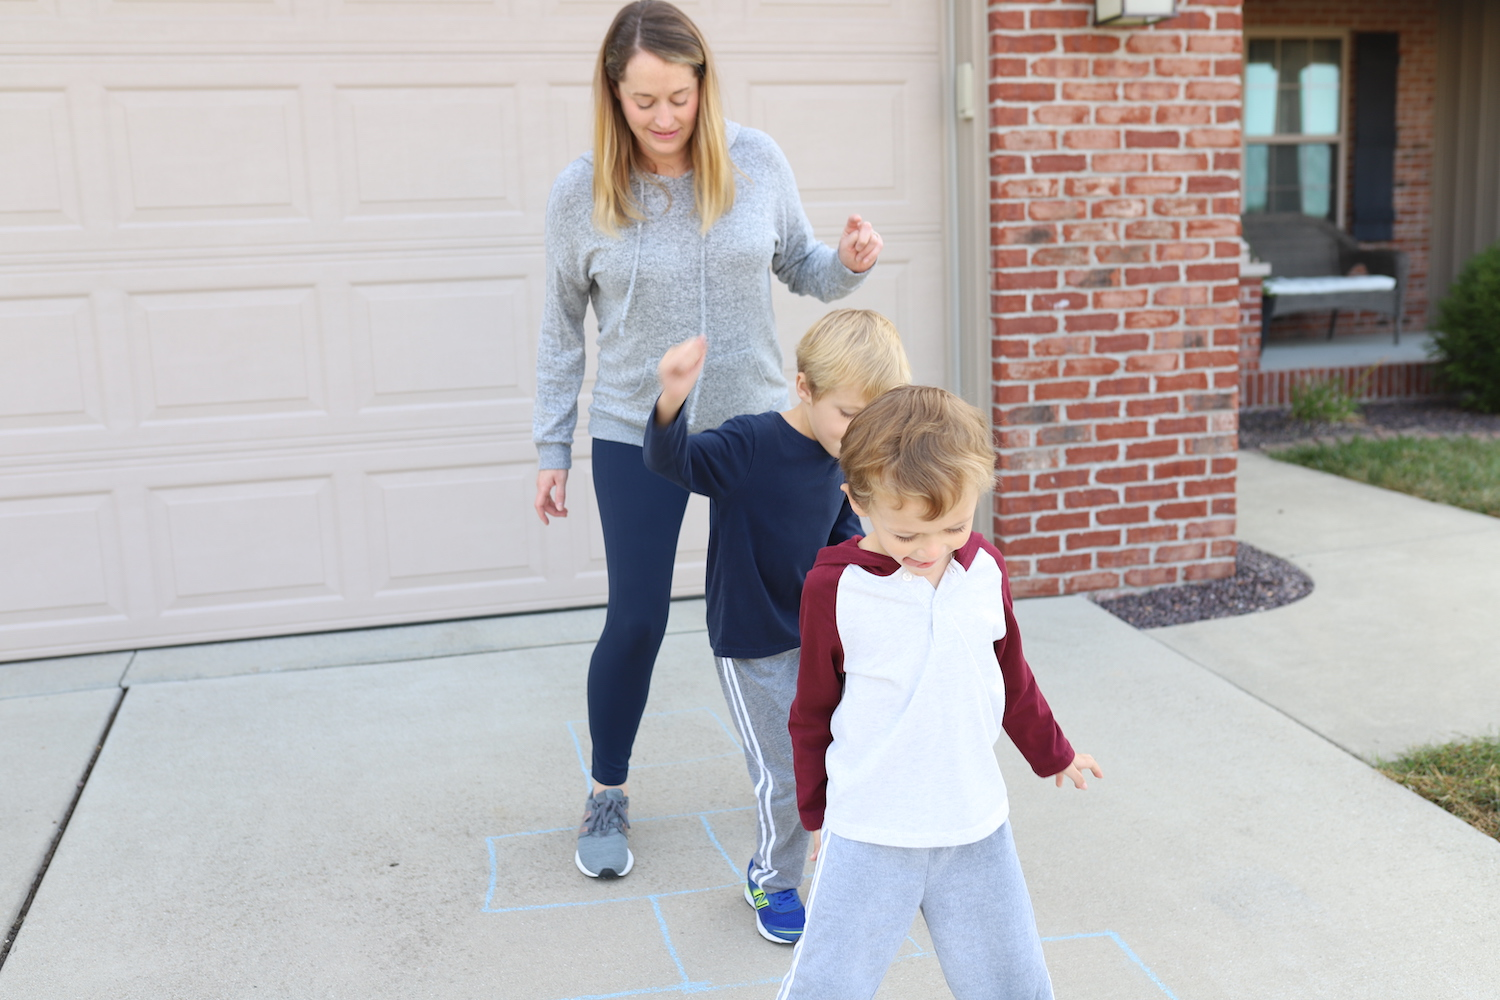 Take a brain break from learning with the new Ritz Cheese Crispers! Check out our fun ideas to break up learning and use our imaginations! #cRITZpy